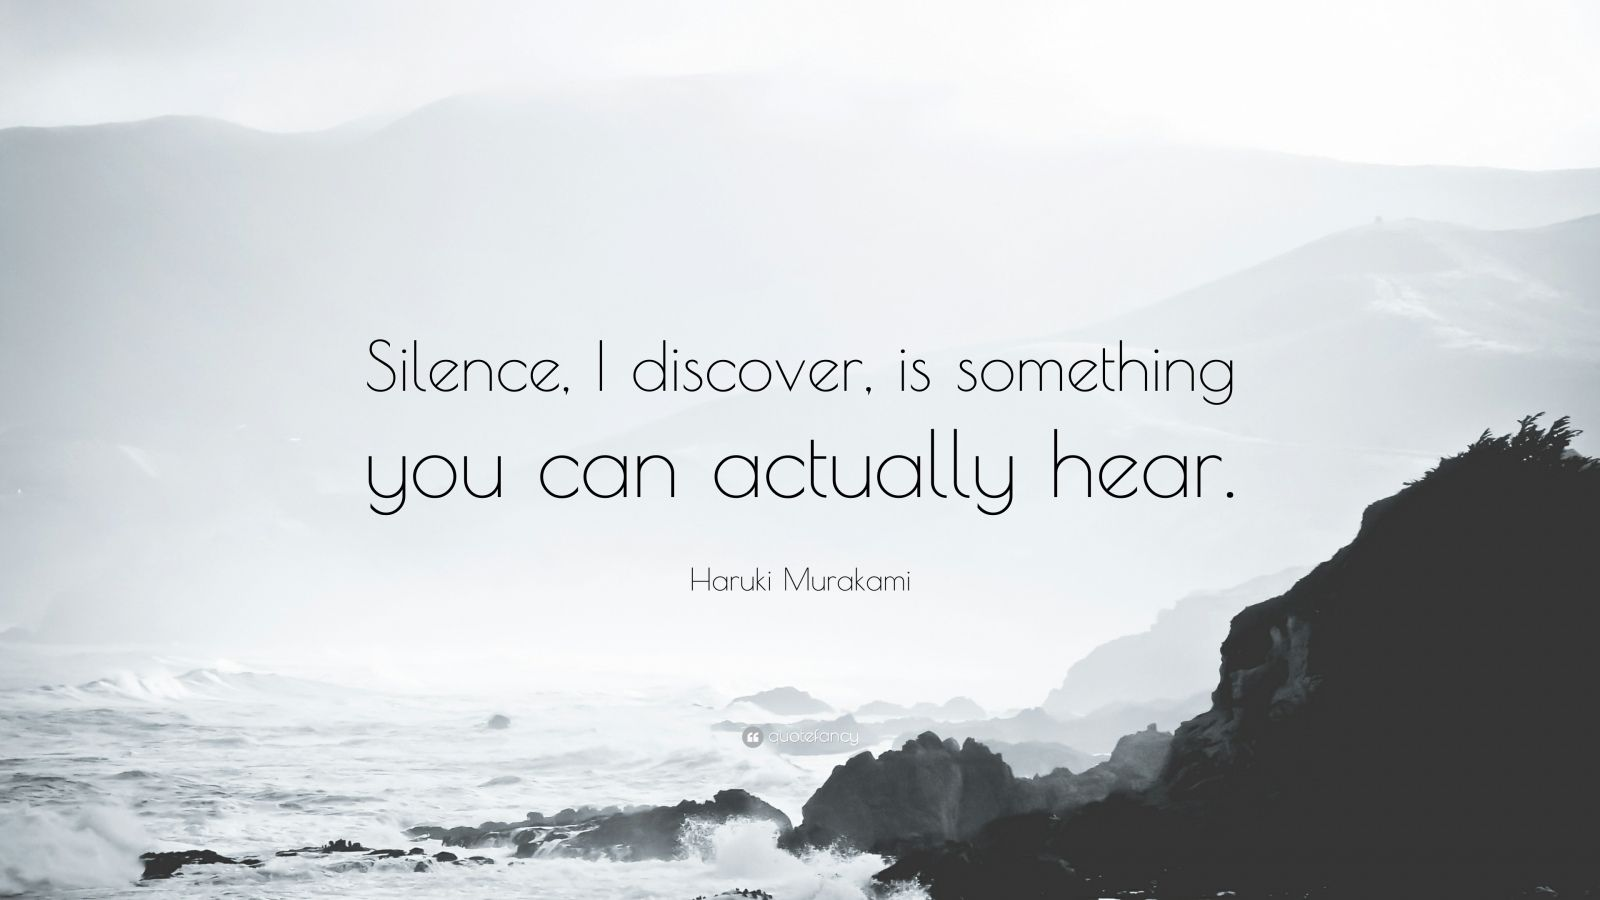 """Haruki Murakami Quote: """"Silence, I discover, is something you can actually hear."""""""